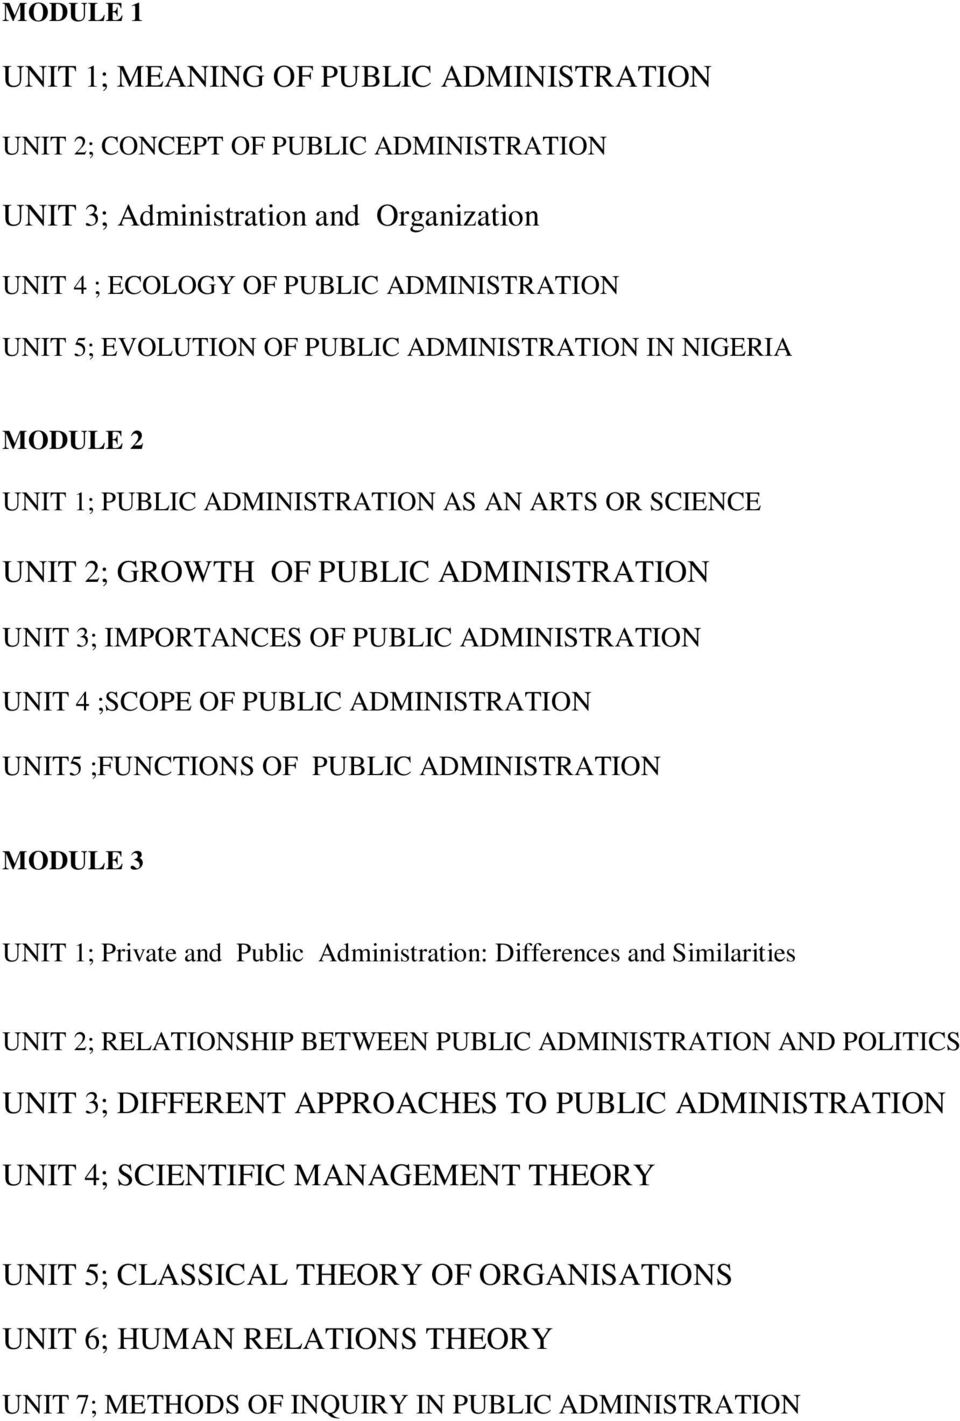 similarities and differences of public administration and new public management Efforts to apply new public management and similar frameworks in strategy   administrative sciences, 7(4), 35, doi 103390/admsci7040035.